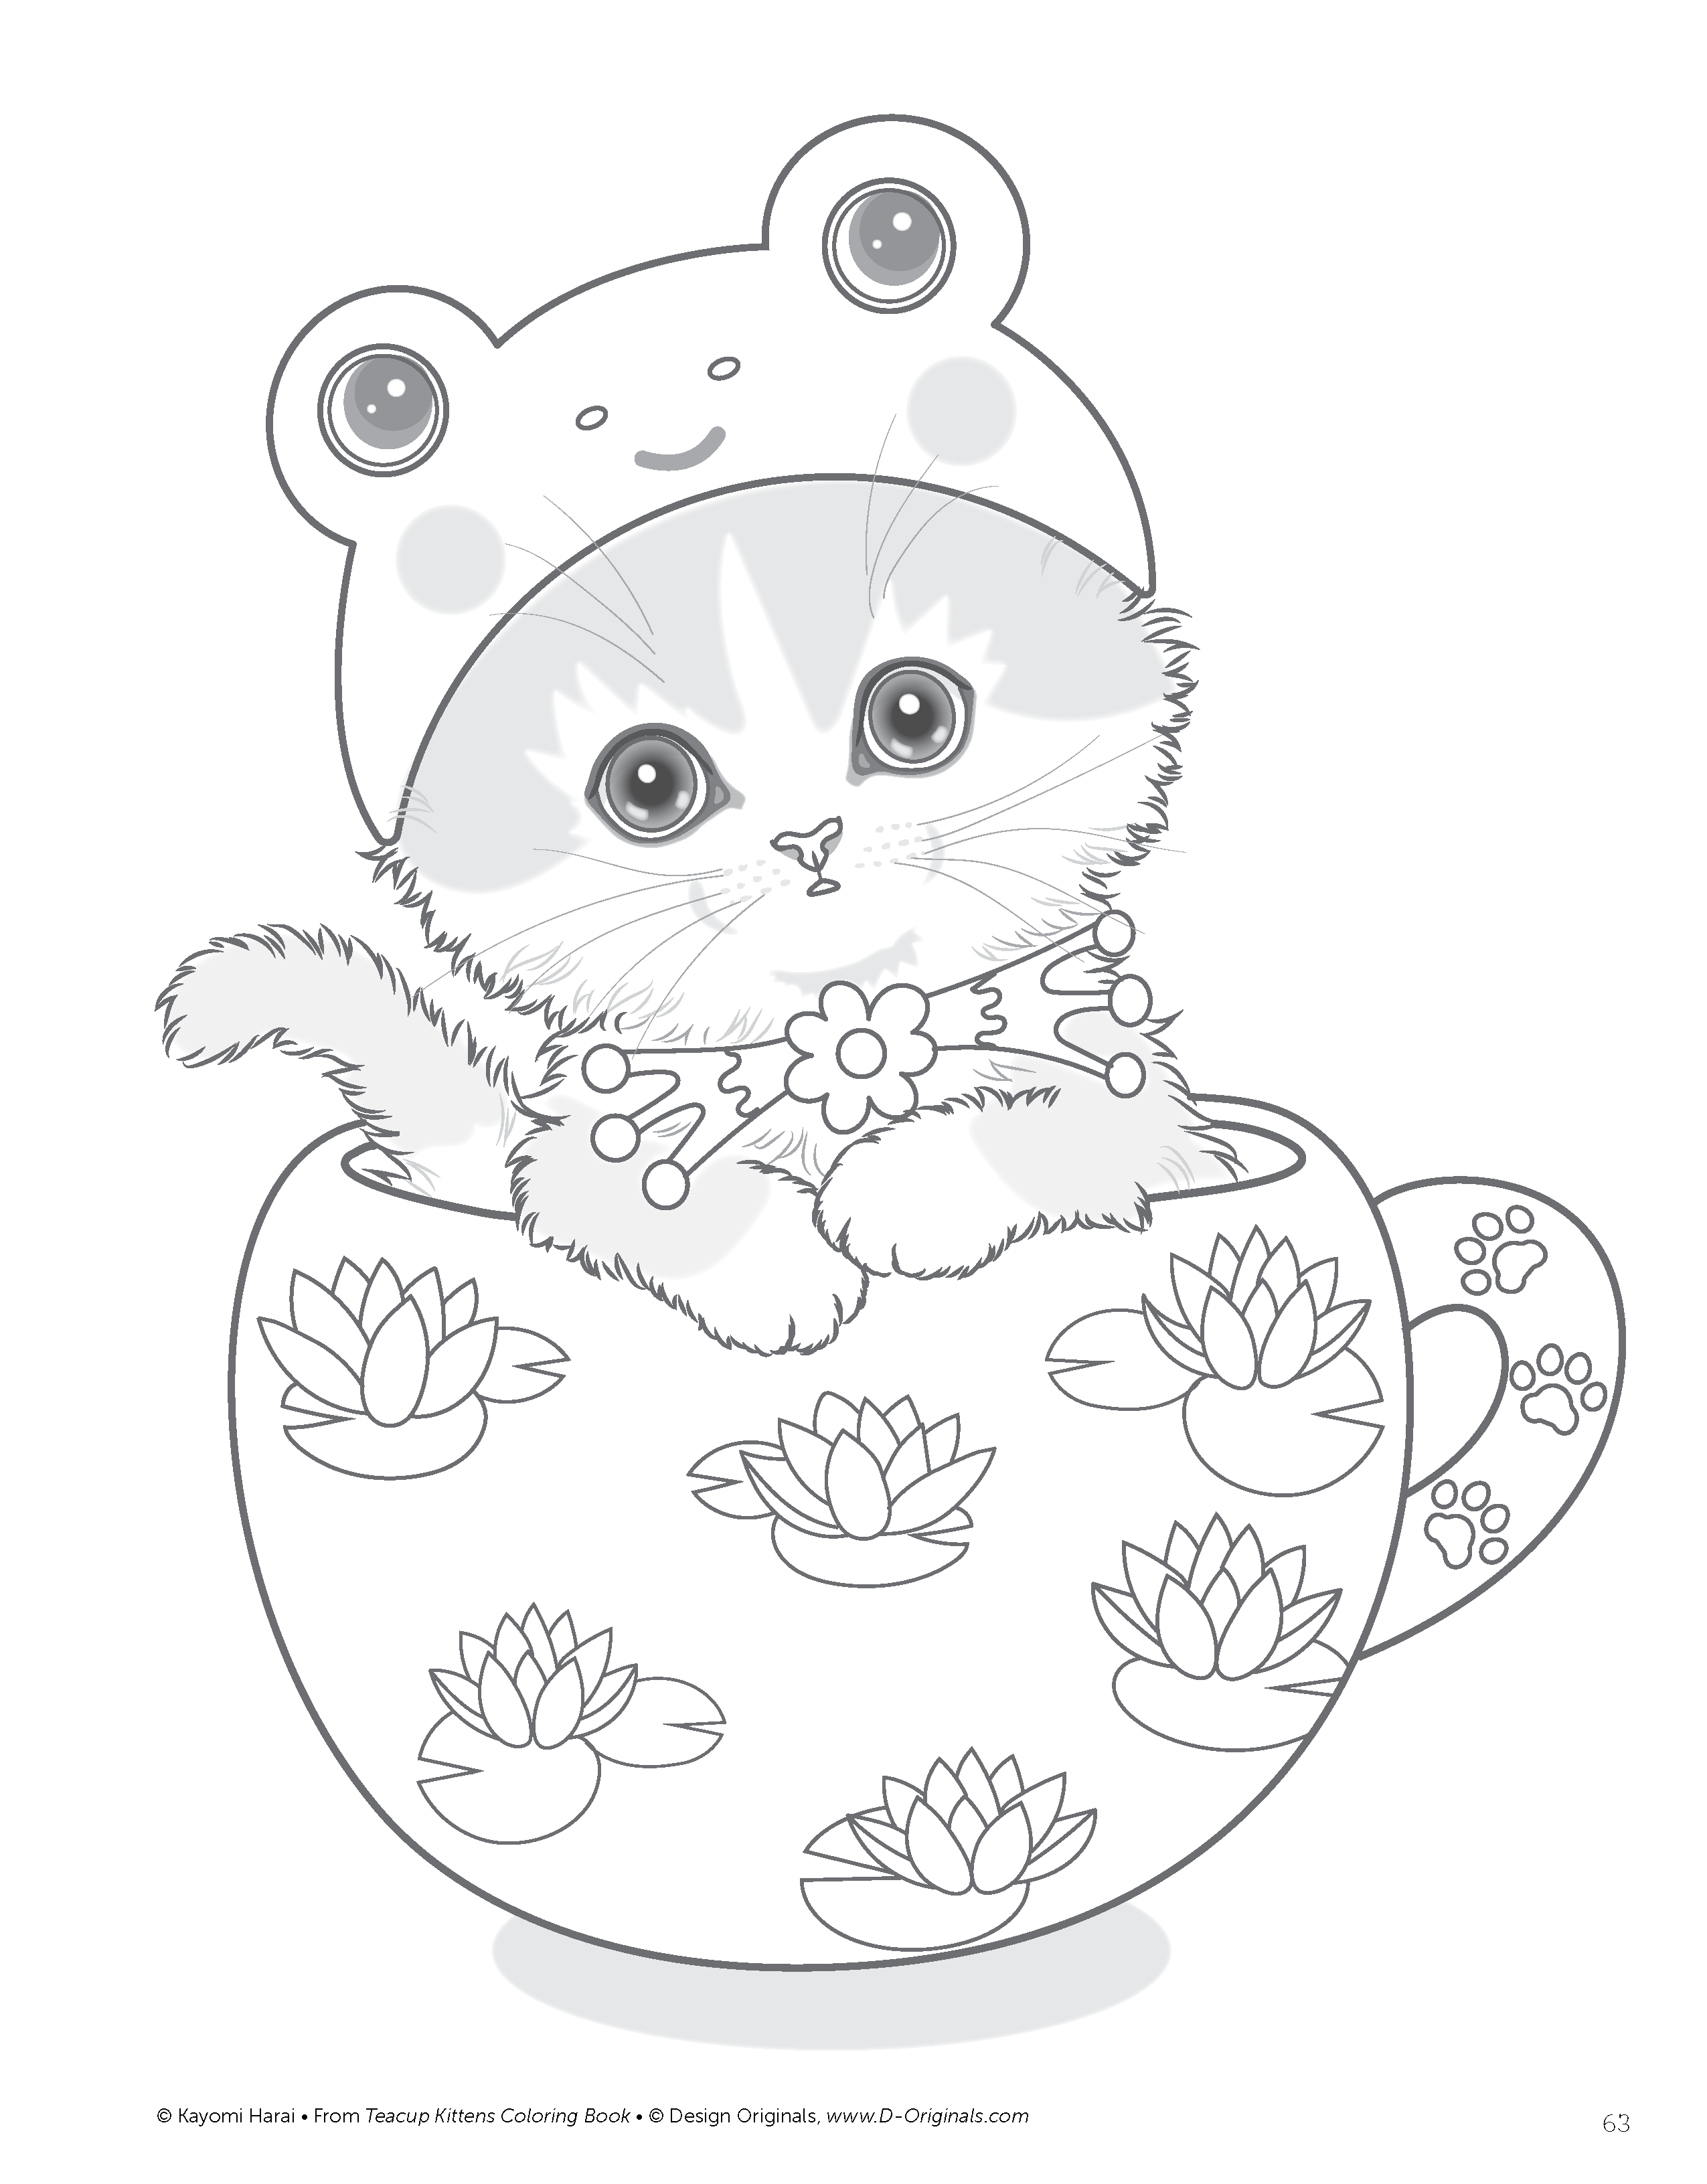 coloring pages kitten amazoncom teacup kittens coloring book design originals coloring kitten pages